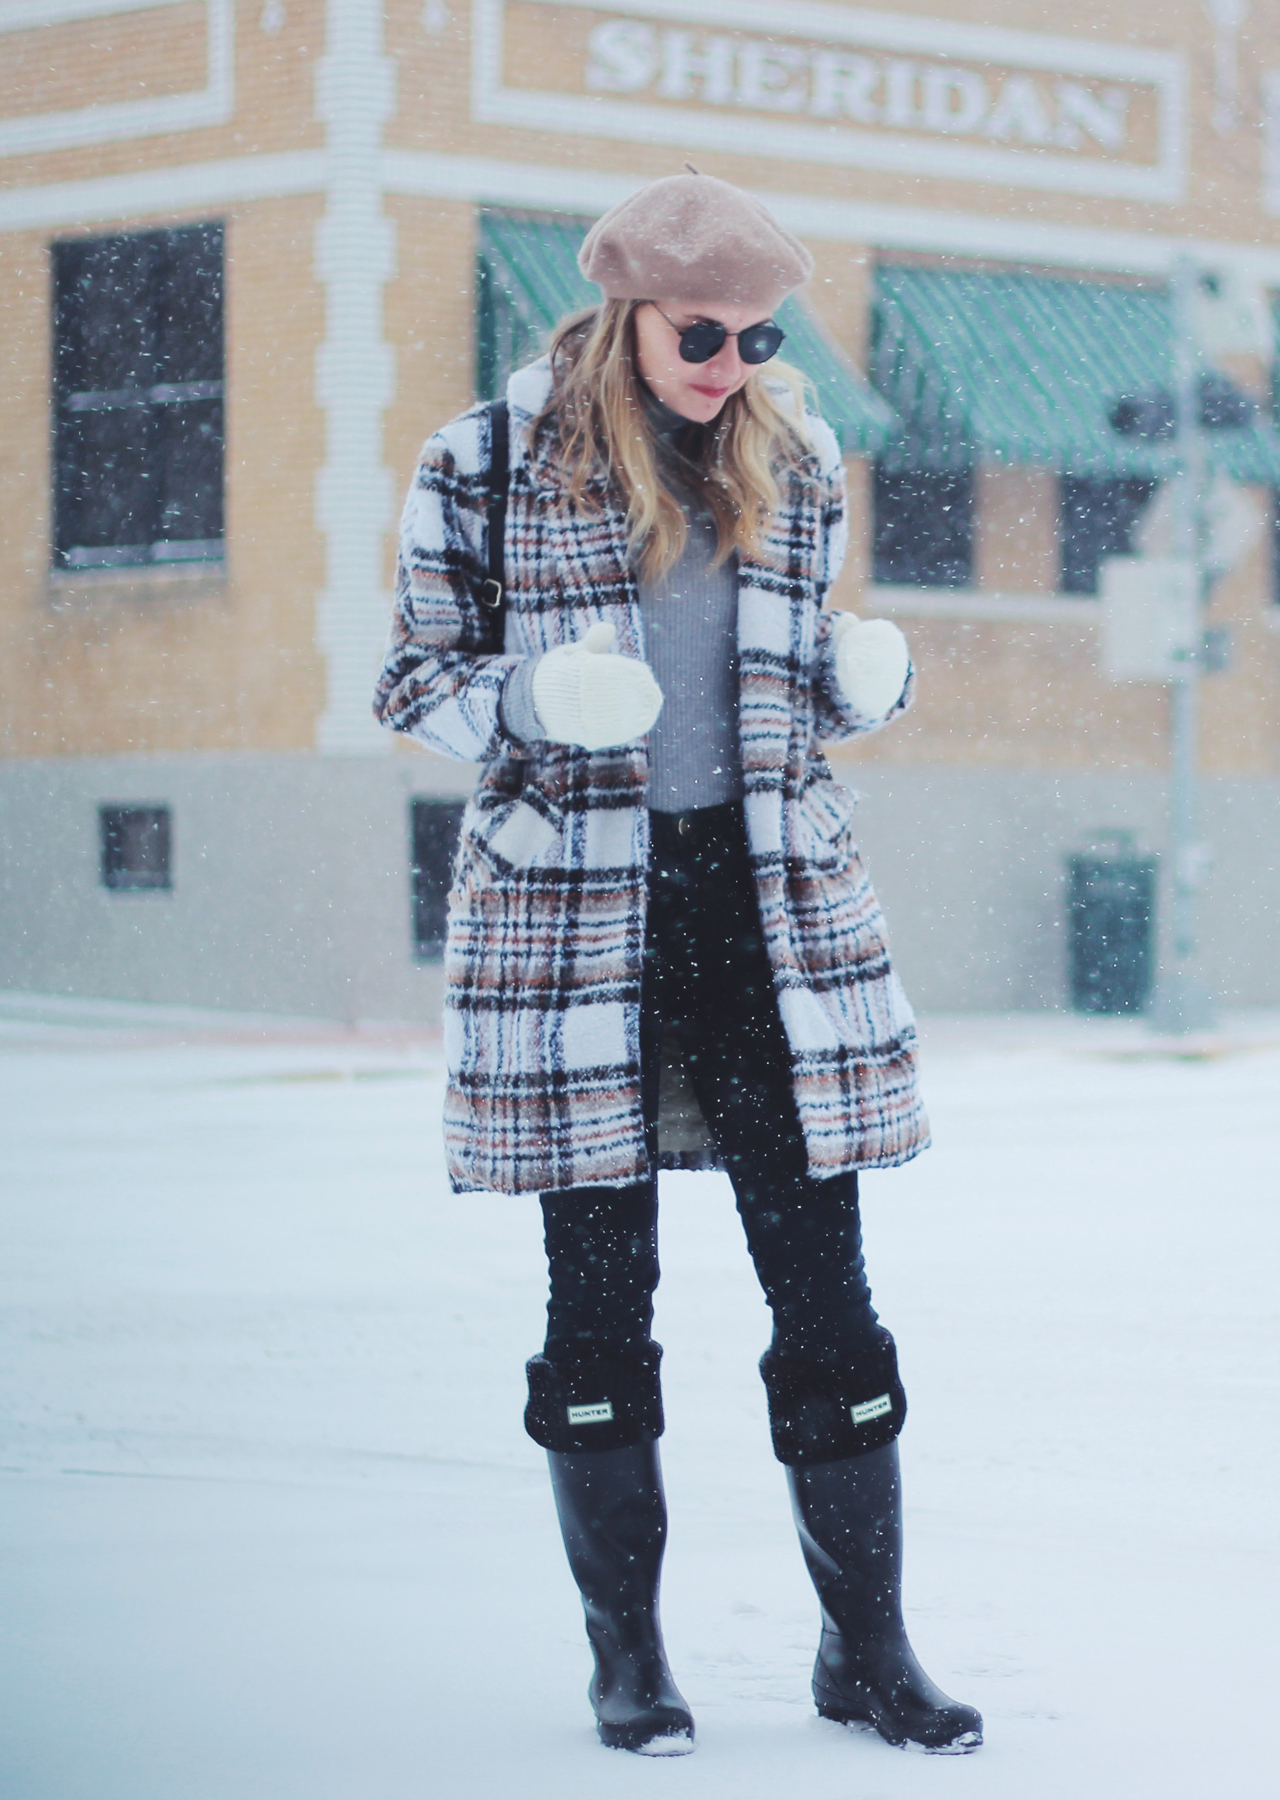 The Steele Maiden: Sheridan, Wyoming Snow Day - Plaid Coat, Beret and Hunter Boots